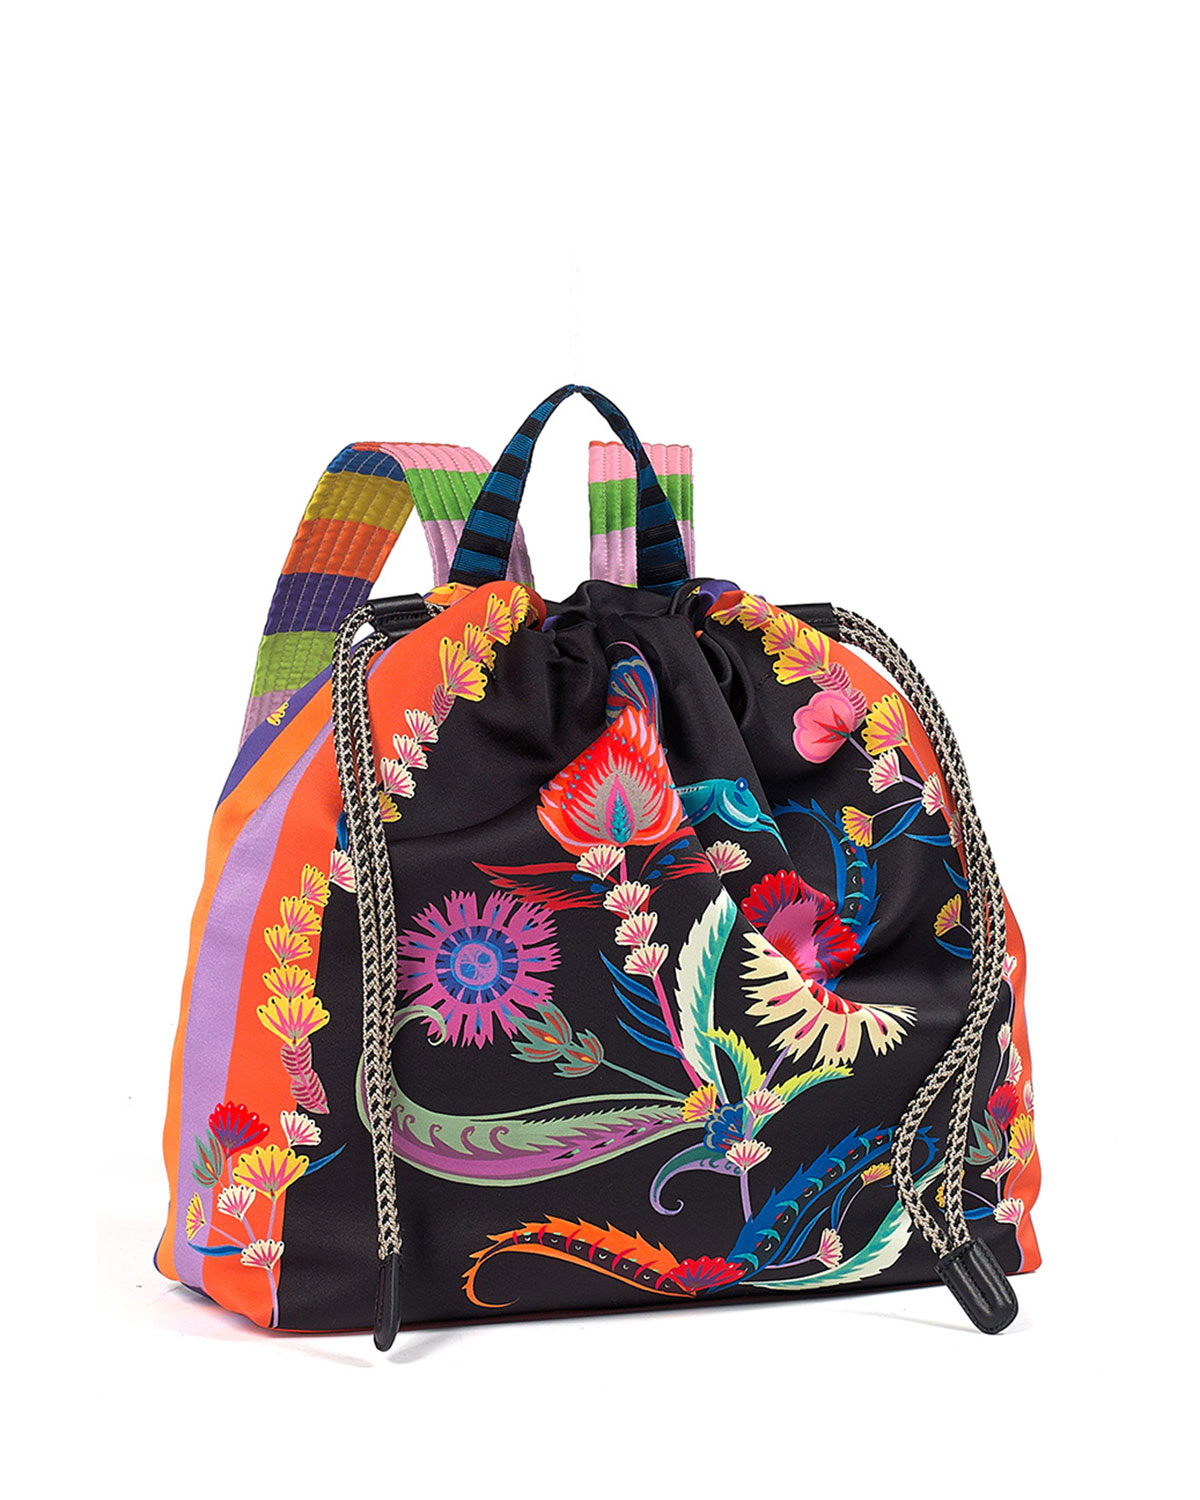 Multicolor Printed Drawstring Backpack